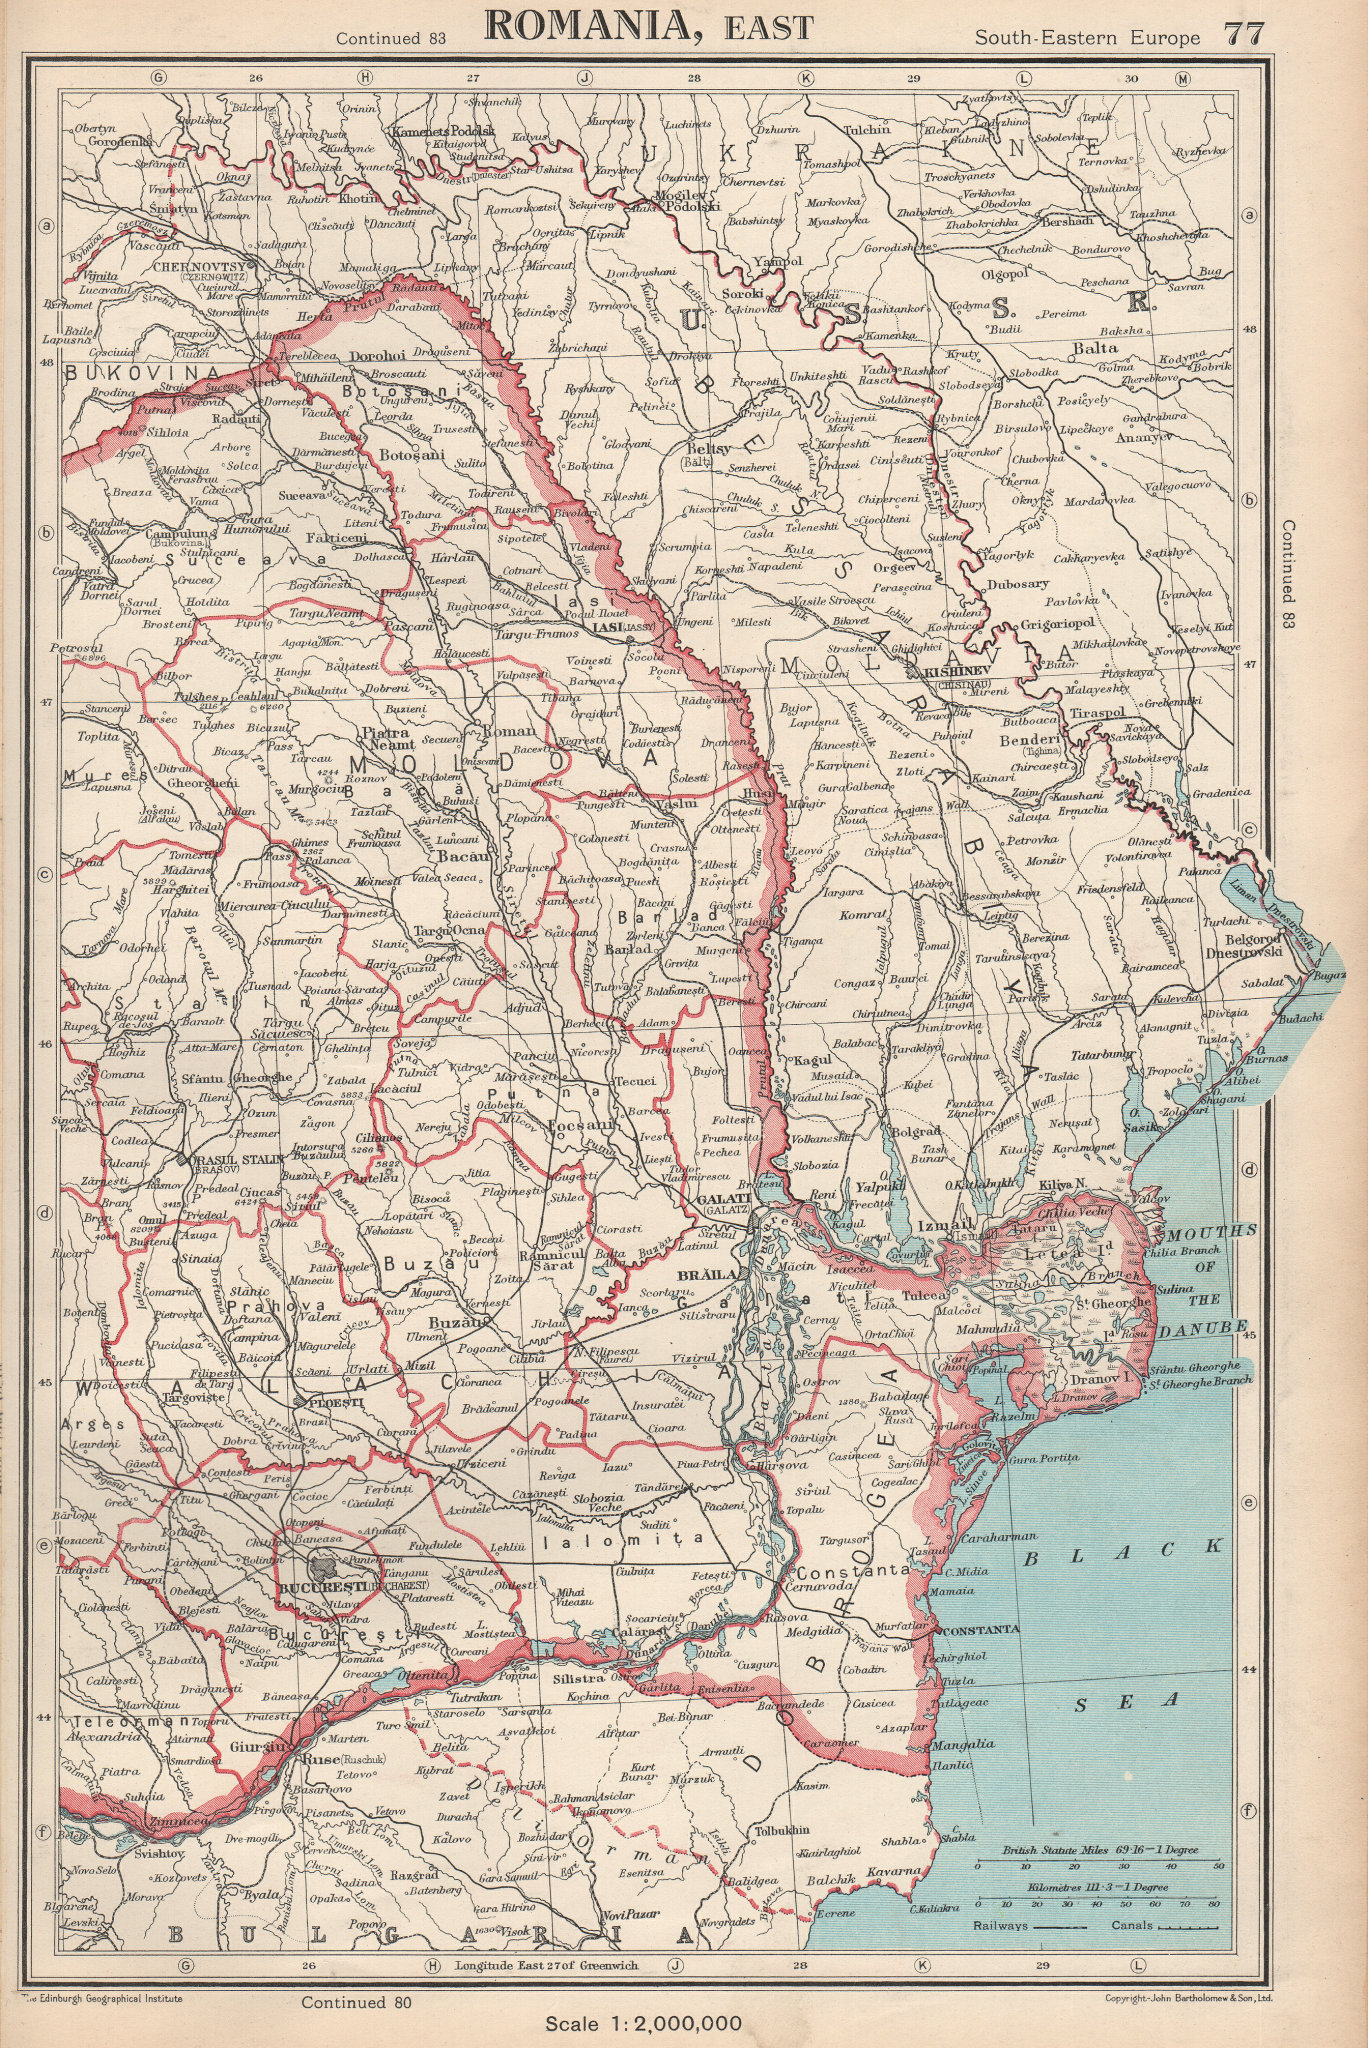 Associate Product ROMANIA EAST. showing judeţ/judets/counties. BARTHOLOMEW 1952 old vintage map